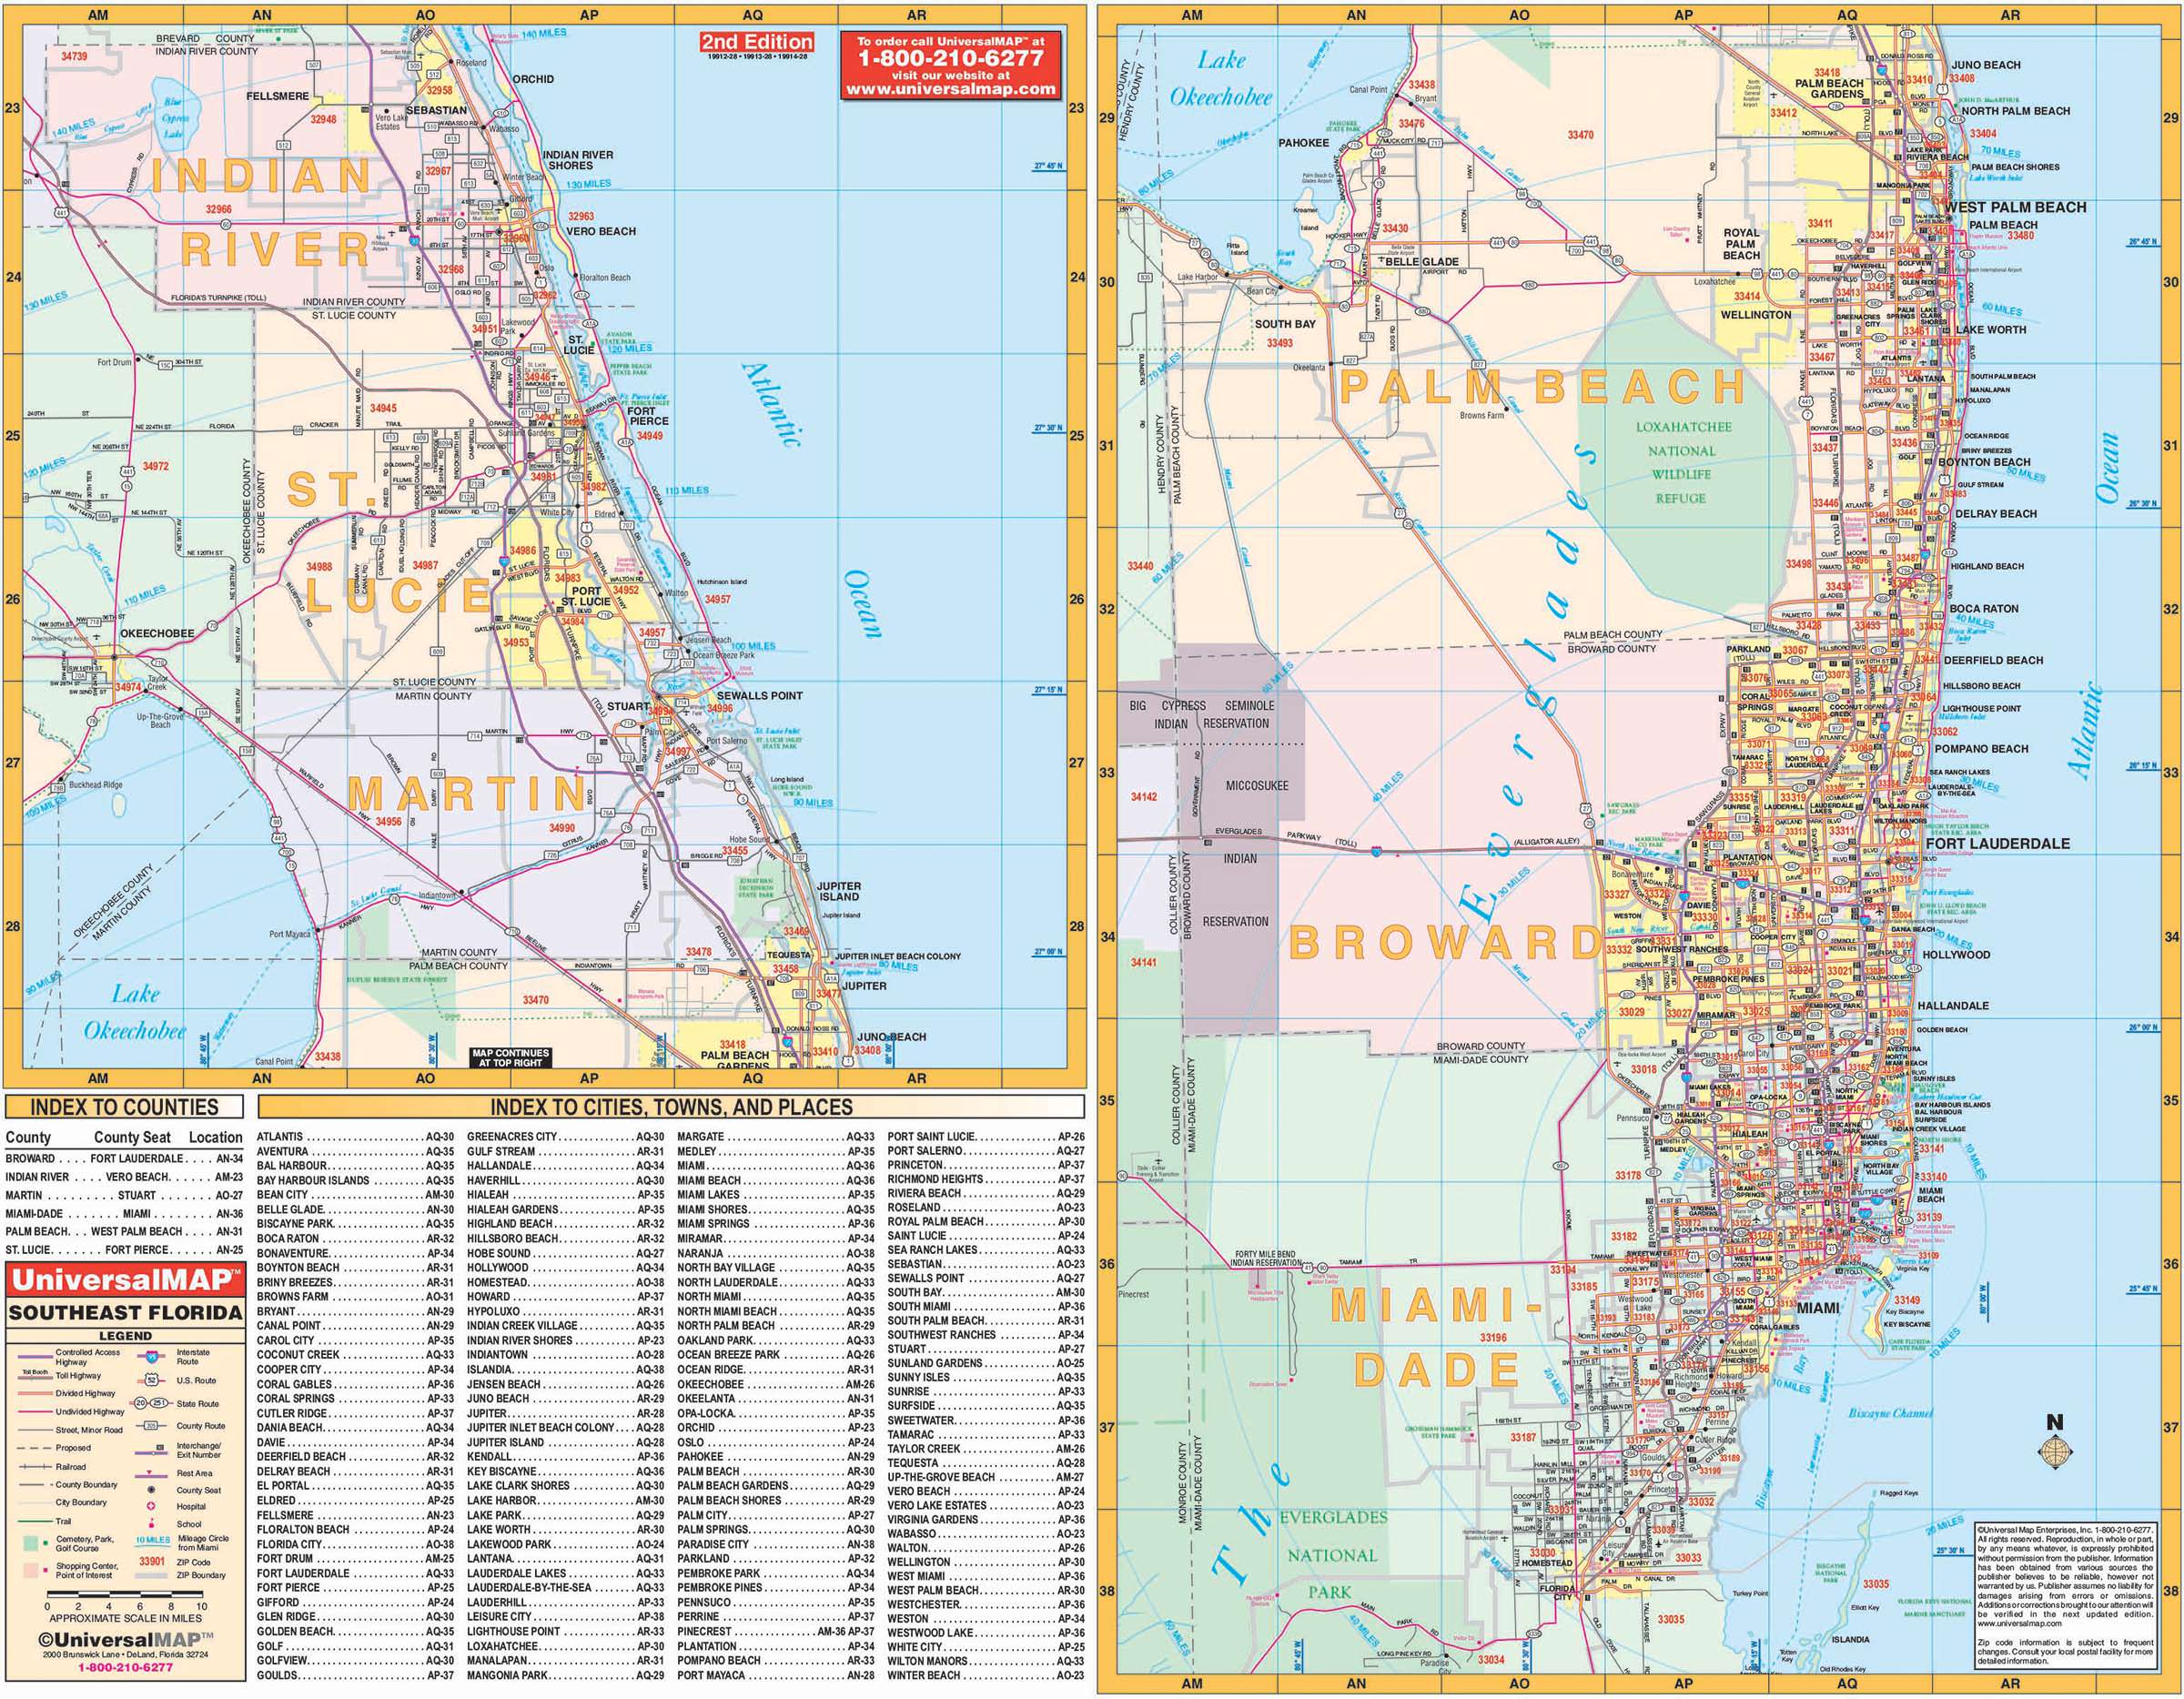 Flordia State Map.Florida State Southeast Regional Wall Map Kappa Map Group